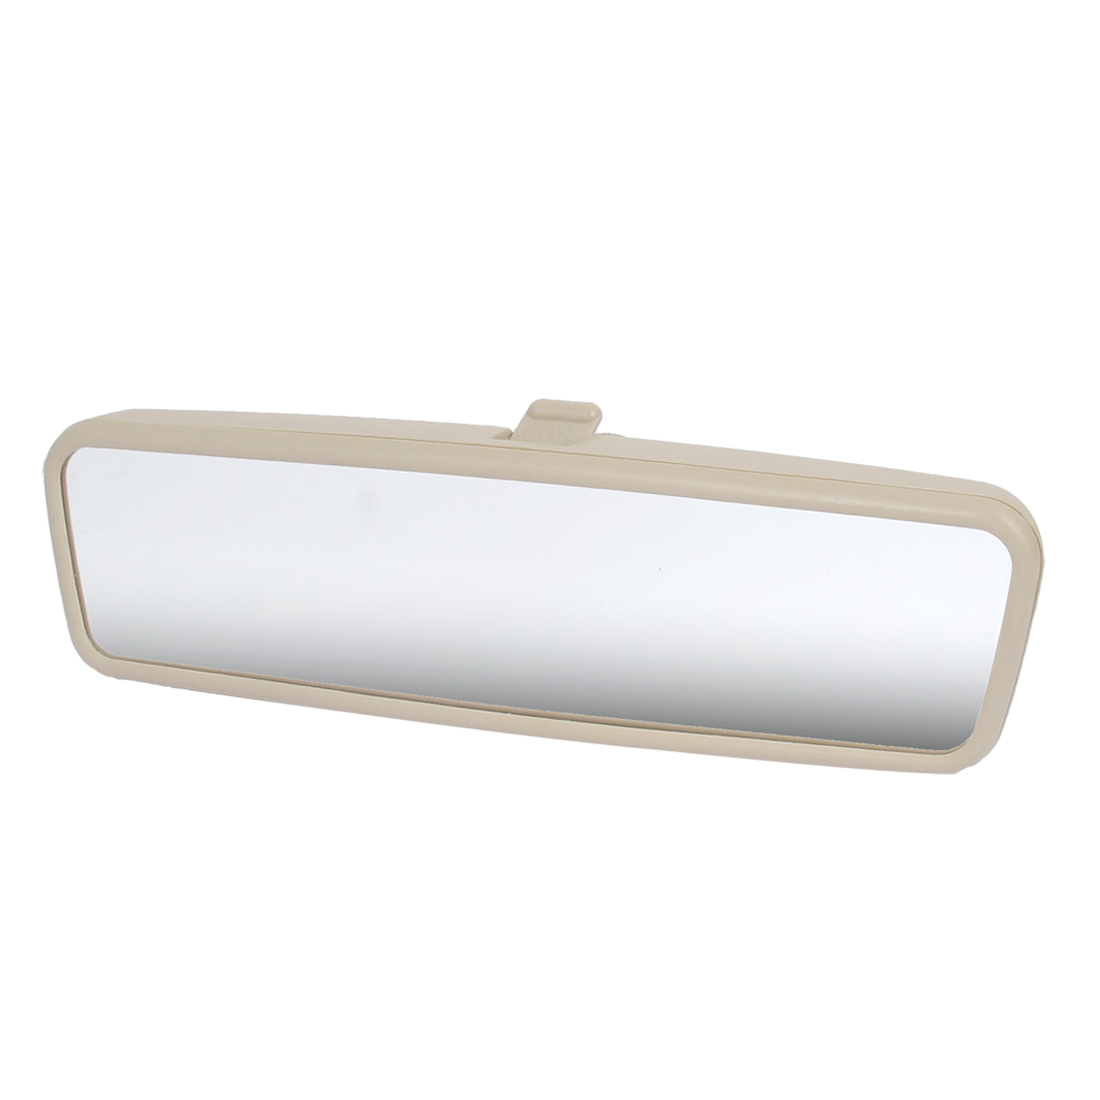 Vehicle Car Beige Plastic Shell Flat Glass Interior Rearview Rear View Mirror for Volkswagen